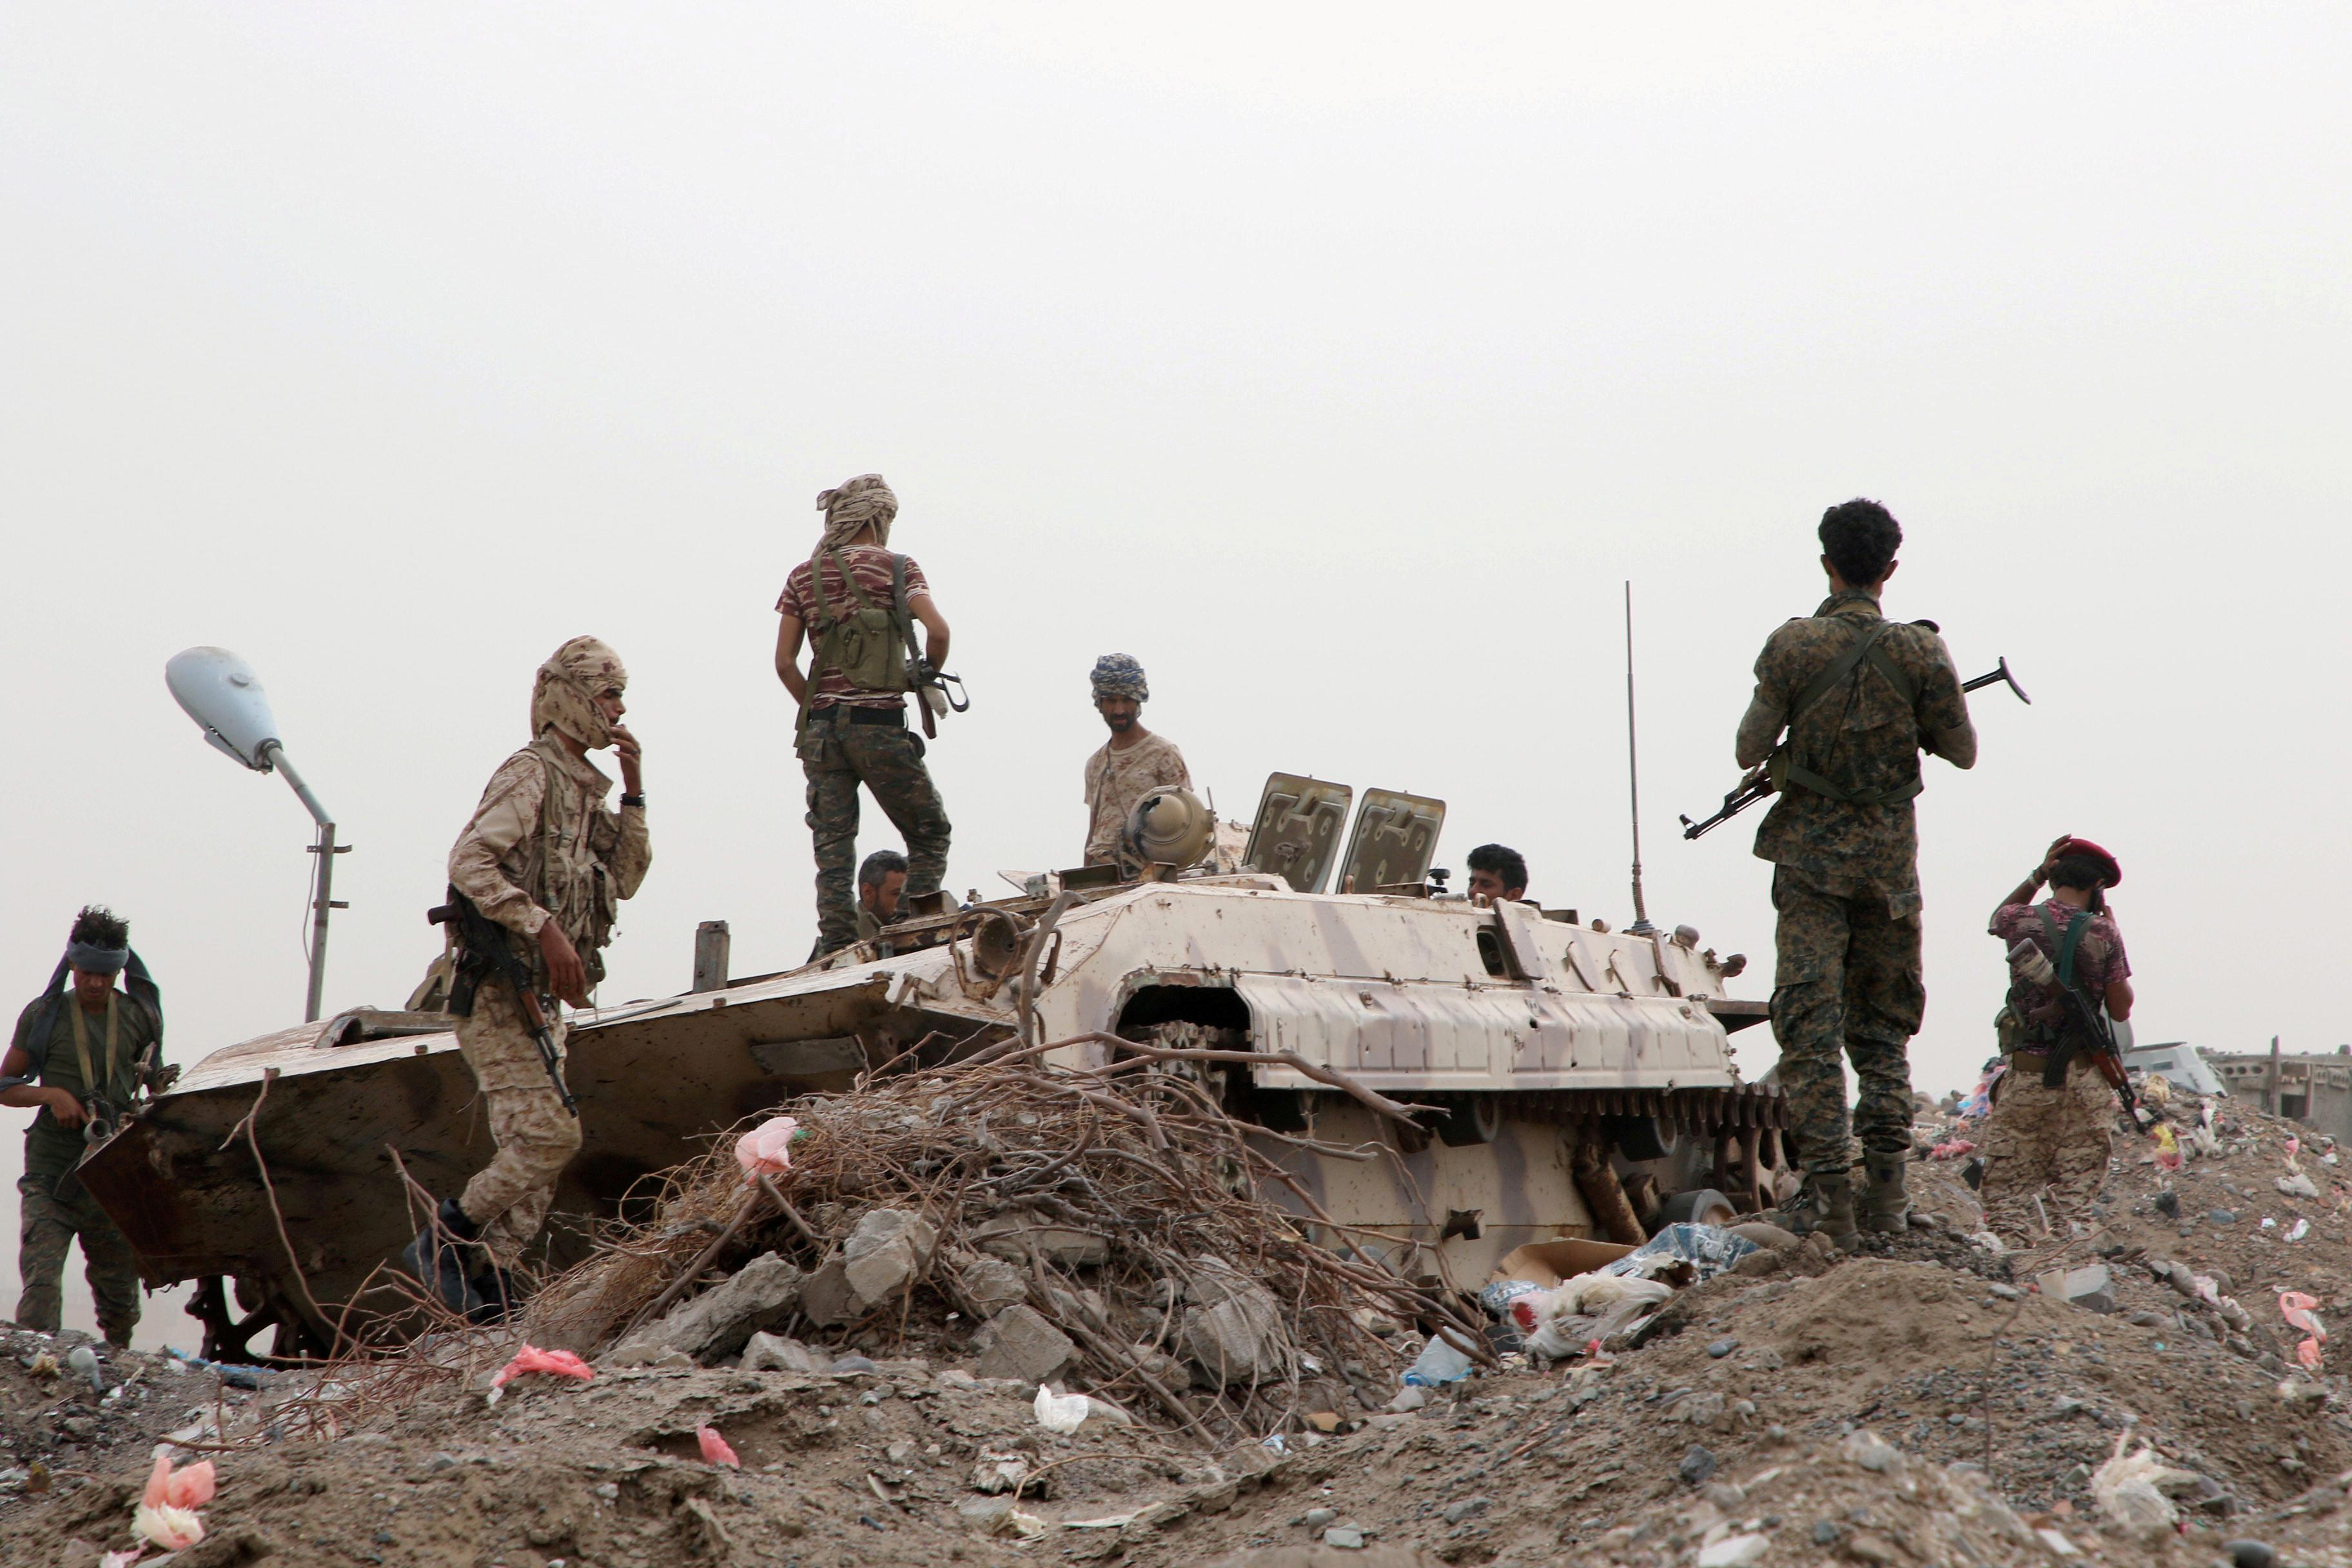 Yemeni government says will not talk to separatists until standoff ends